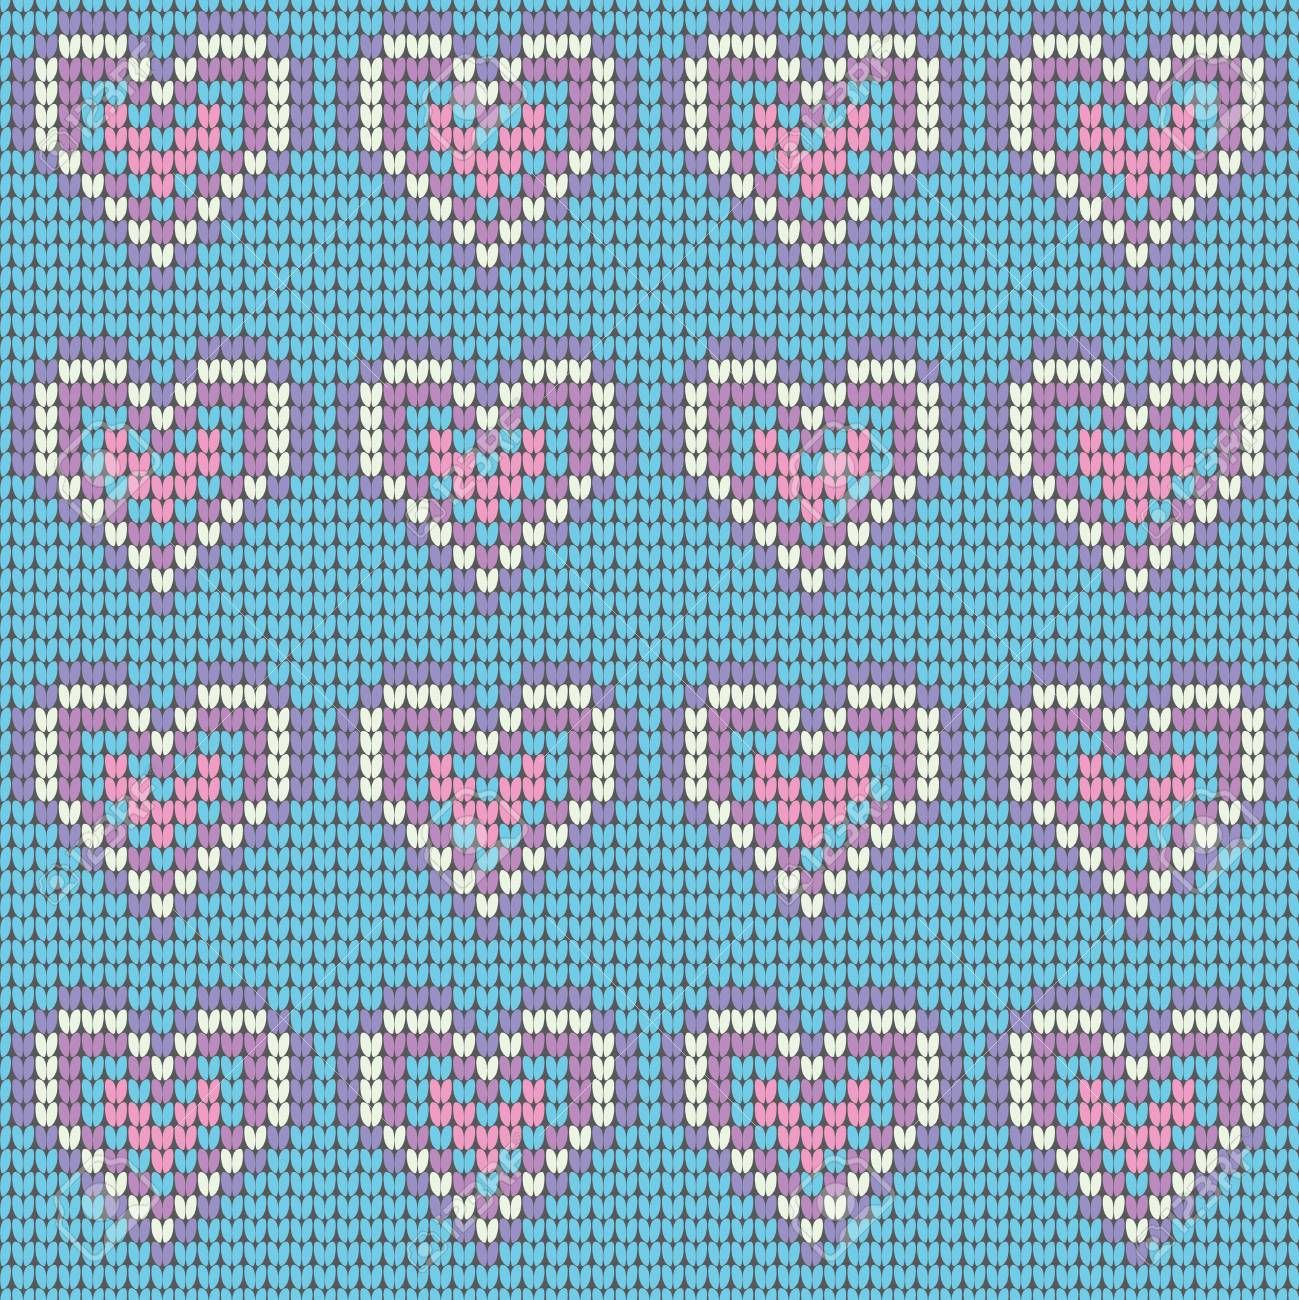 Valentines Day Love Heart Knitted Seamless Pattern. Textures ...